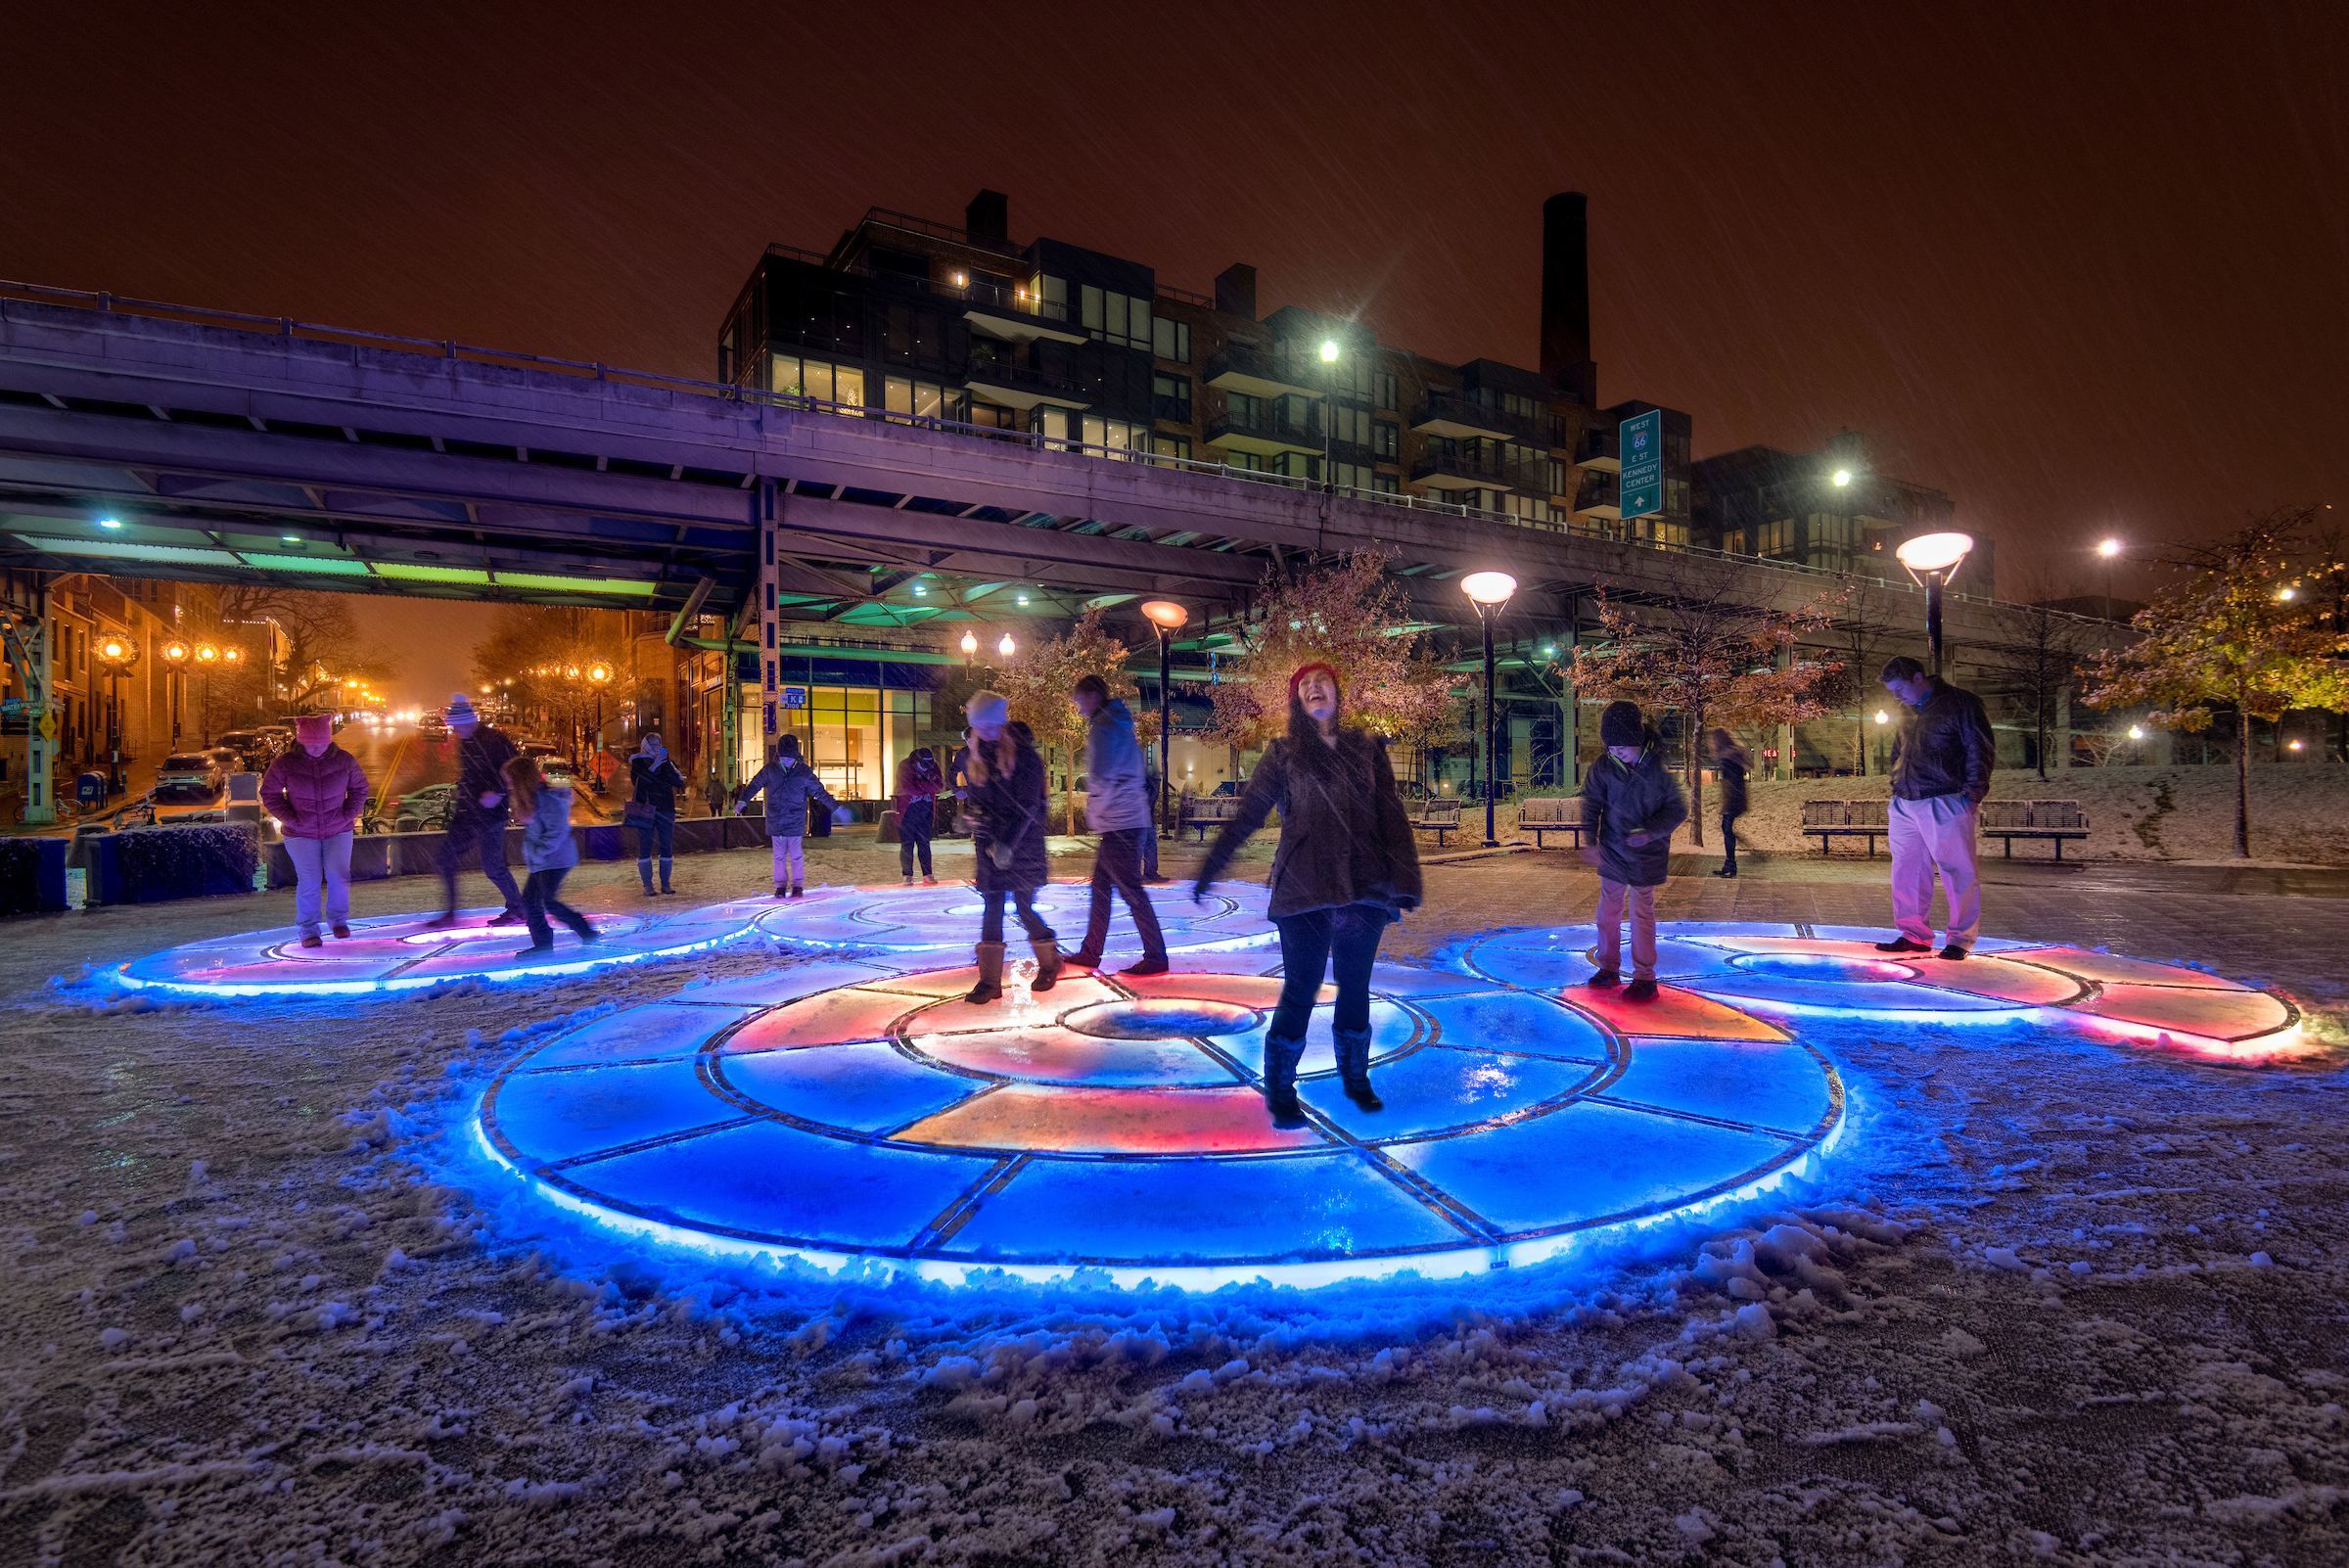 Figures interact with a spiraling, illuminated light sculpture with a nighttime cityscape behind them